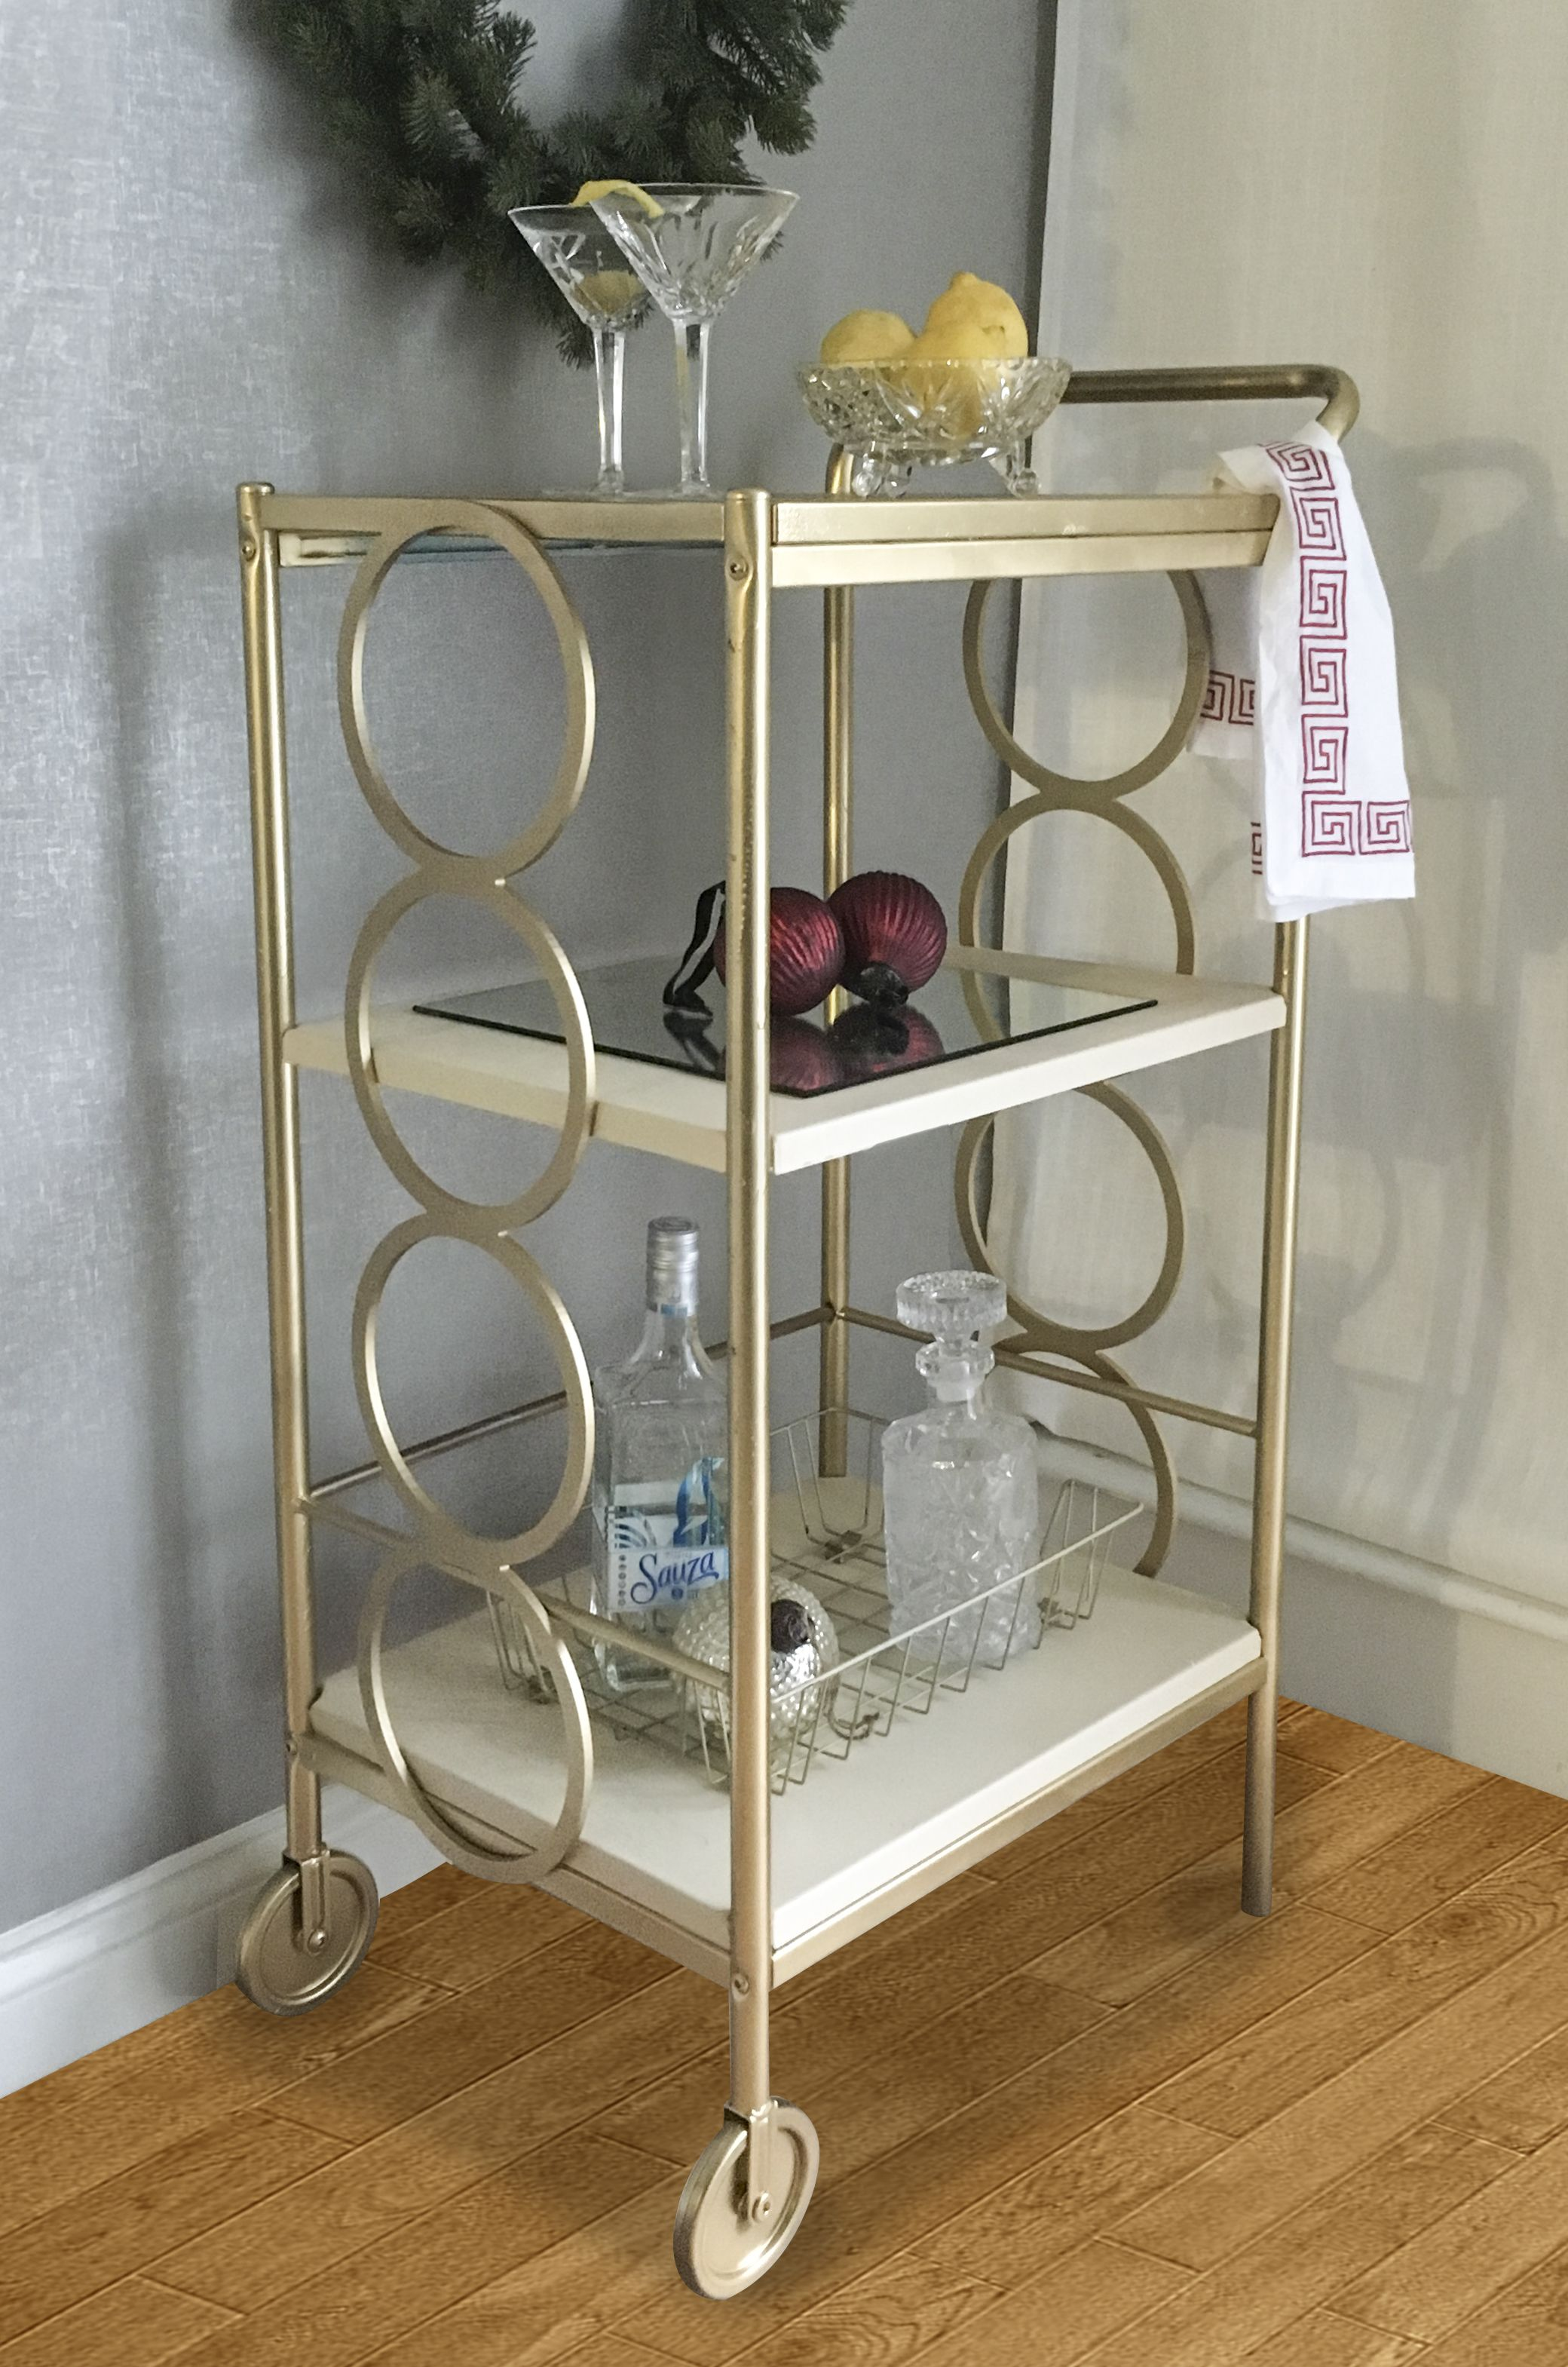 Do You Need A Quick And Easy Diy Bar Cart For The Holidays? Ikea Bygel